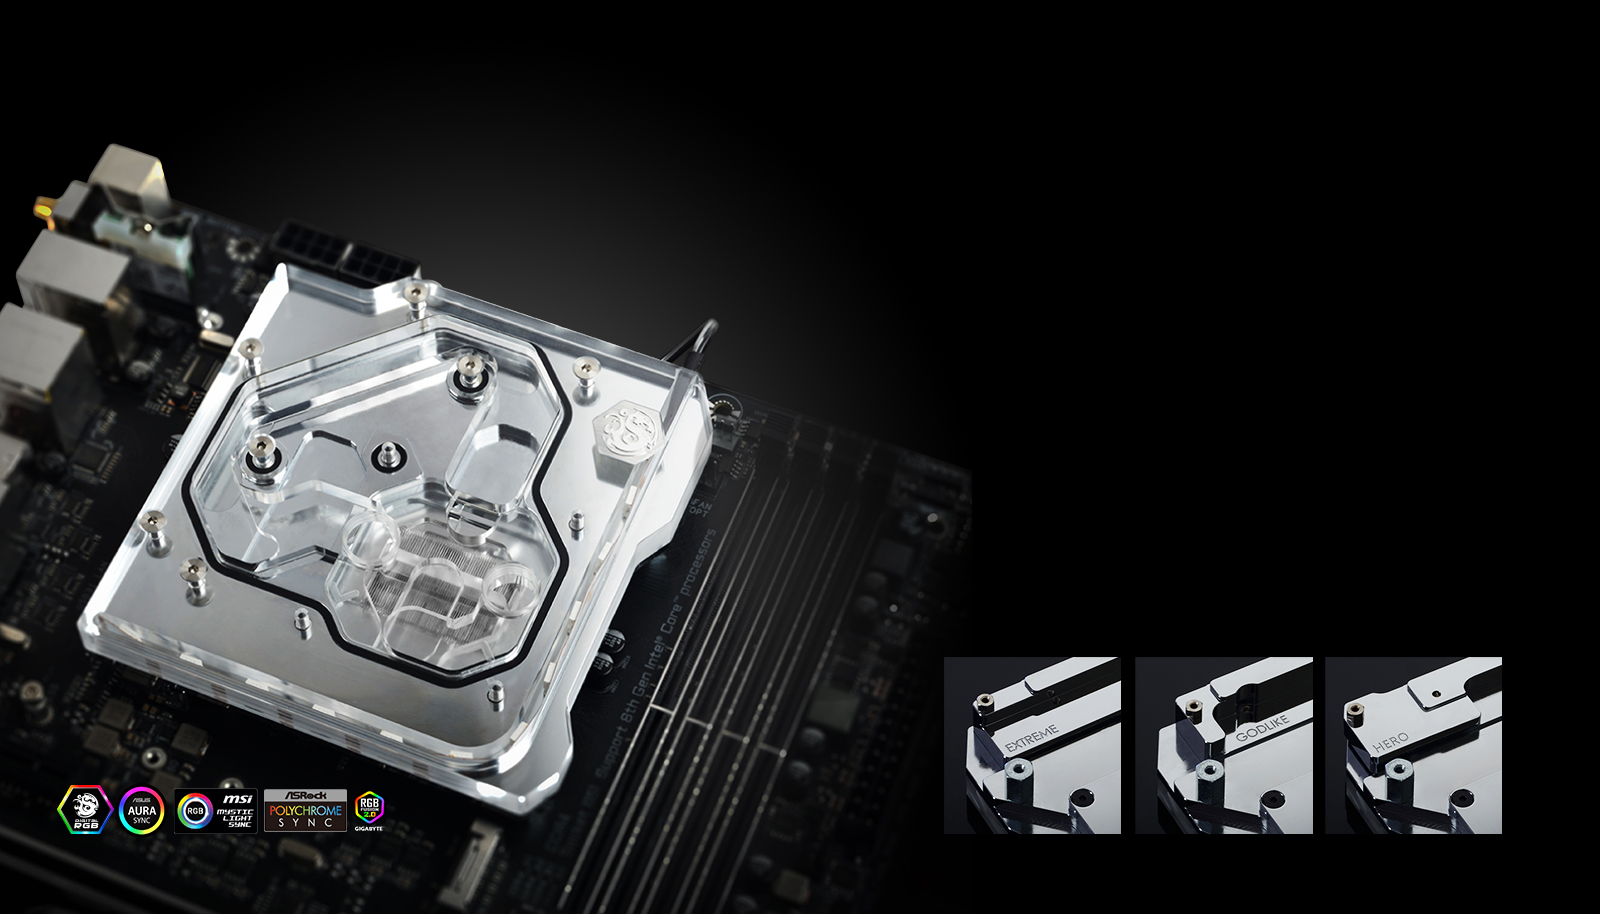 Bitspower Releases Monoblock For ROG Maximus XI Apex